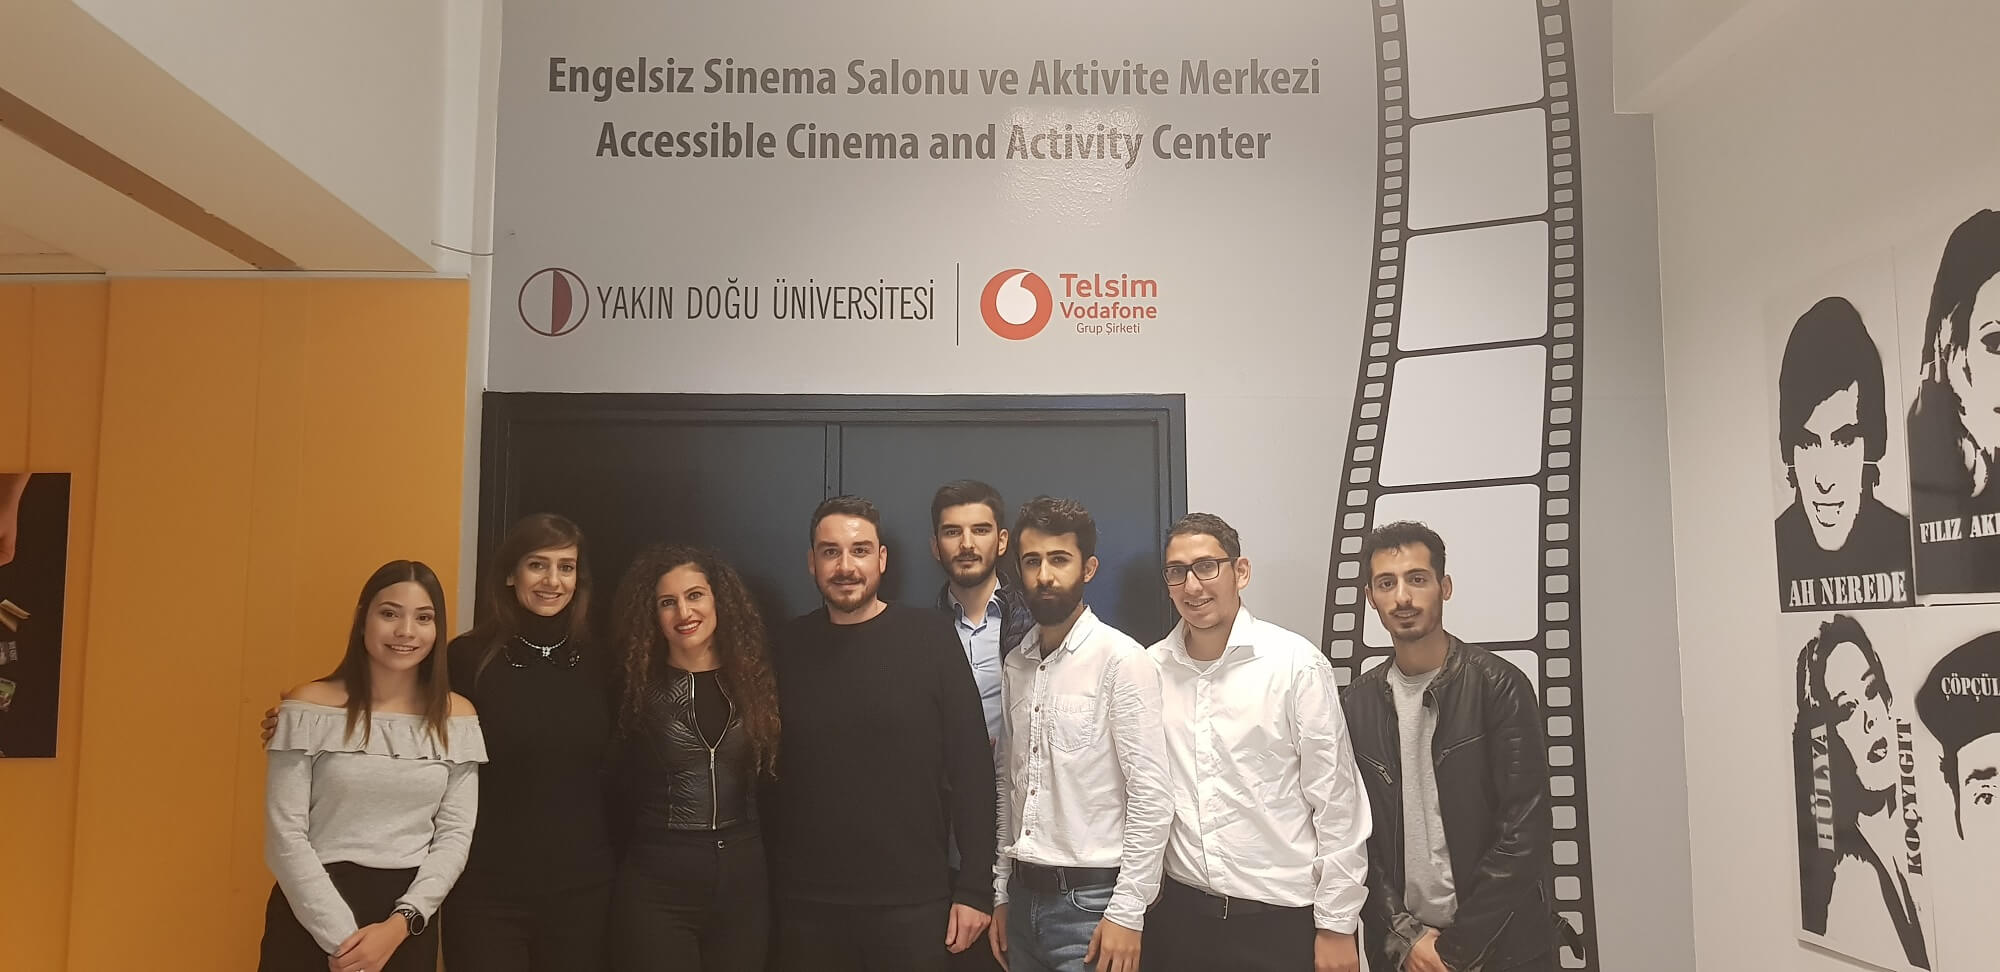 The first film screening of the Accessible Cinema and Activity Center was made for children